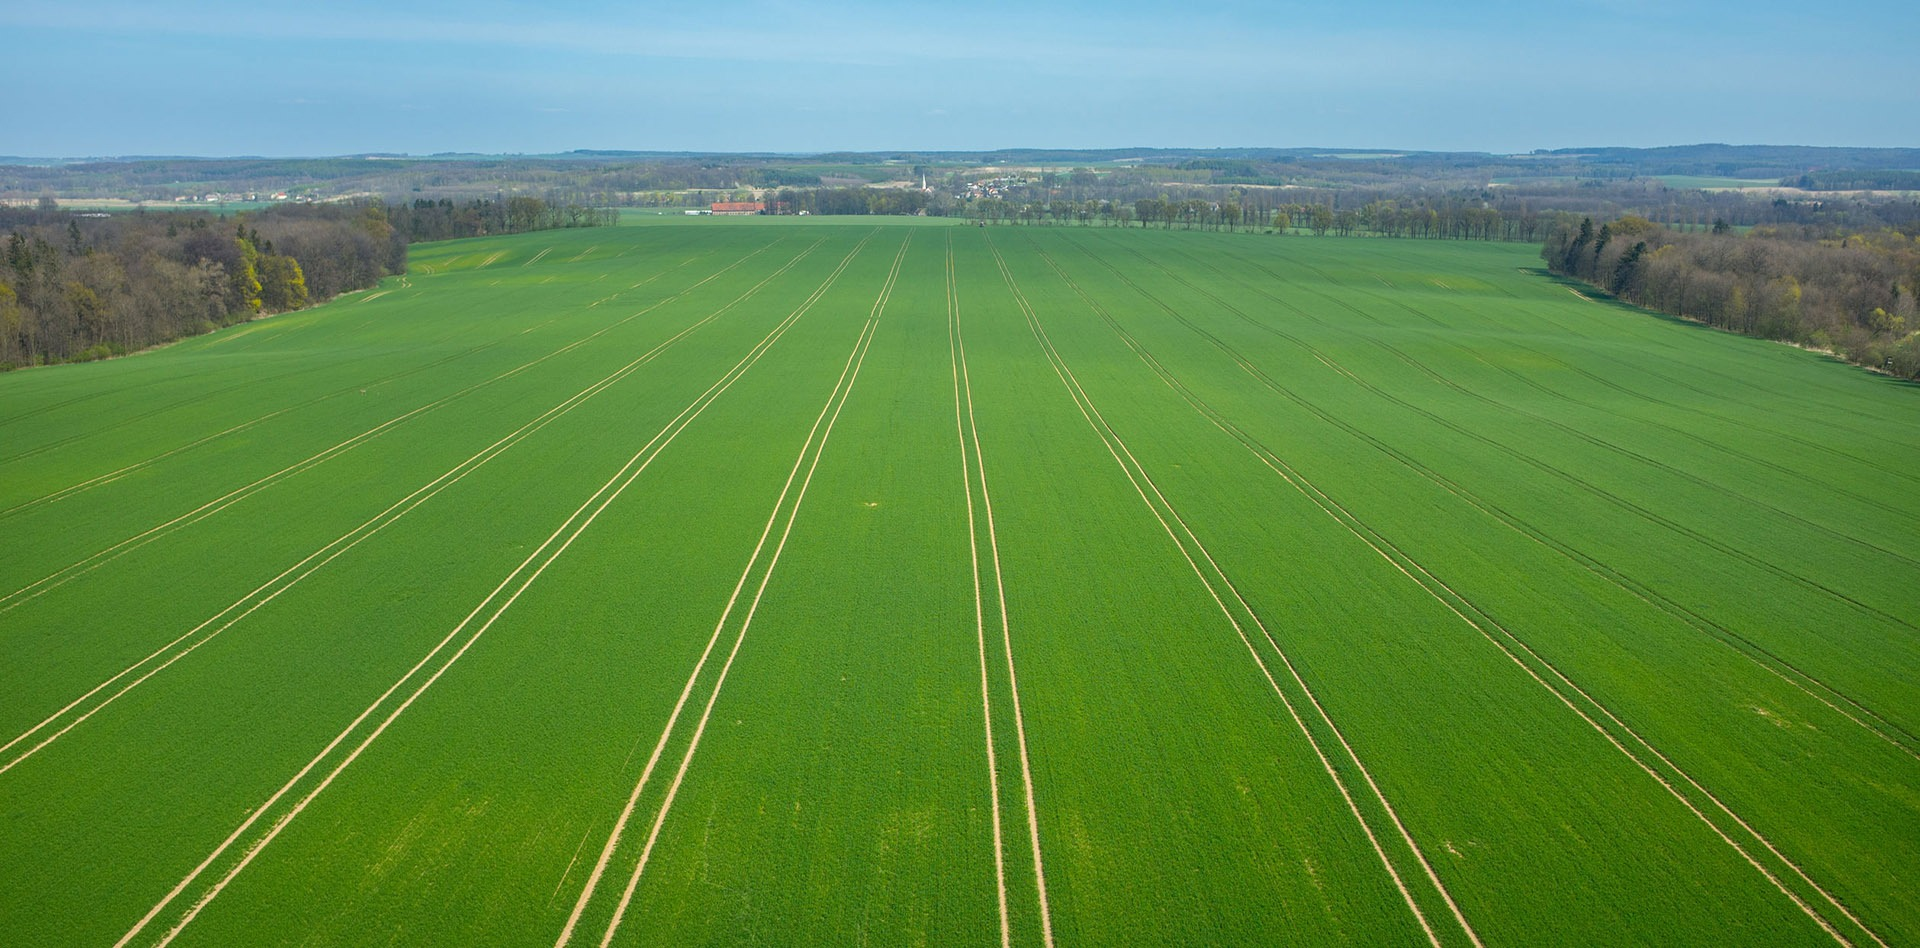 The Turfgrass Group aerial view of grower's field